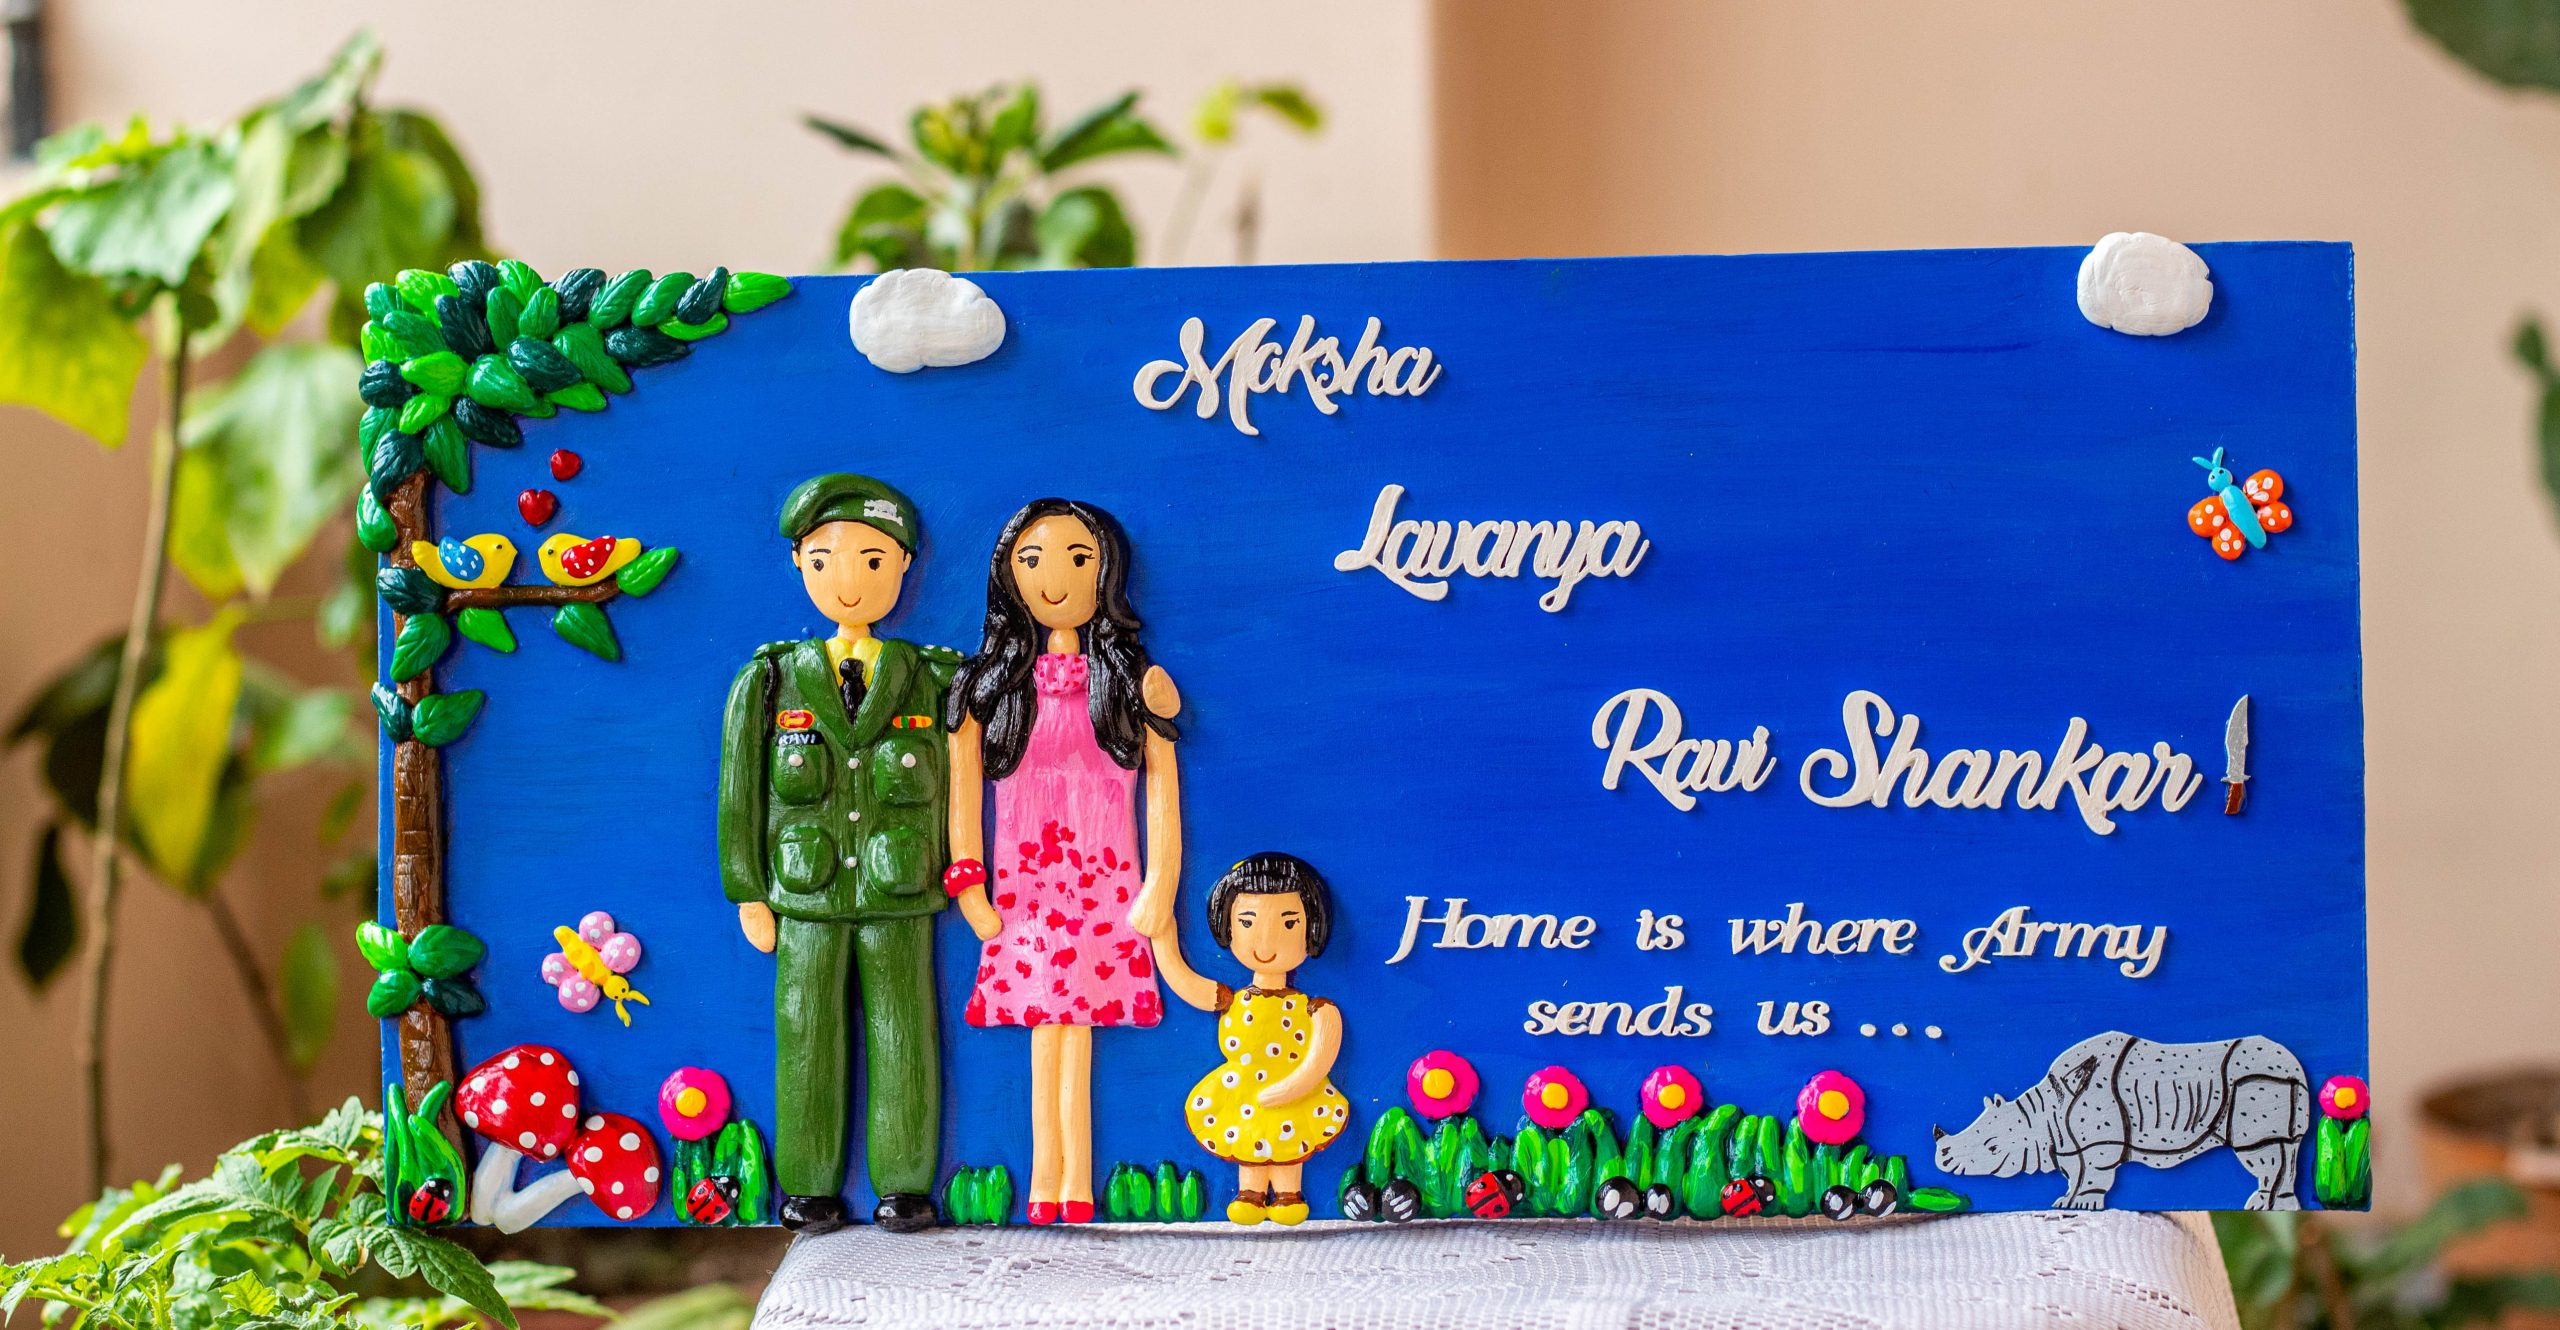 Customized Handcrafted Indian Army Themed Family Nameplate  Customized handcrafted Indian Army themed family nameplate creative corner